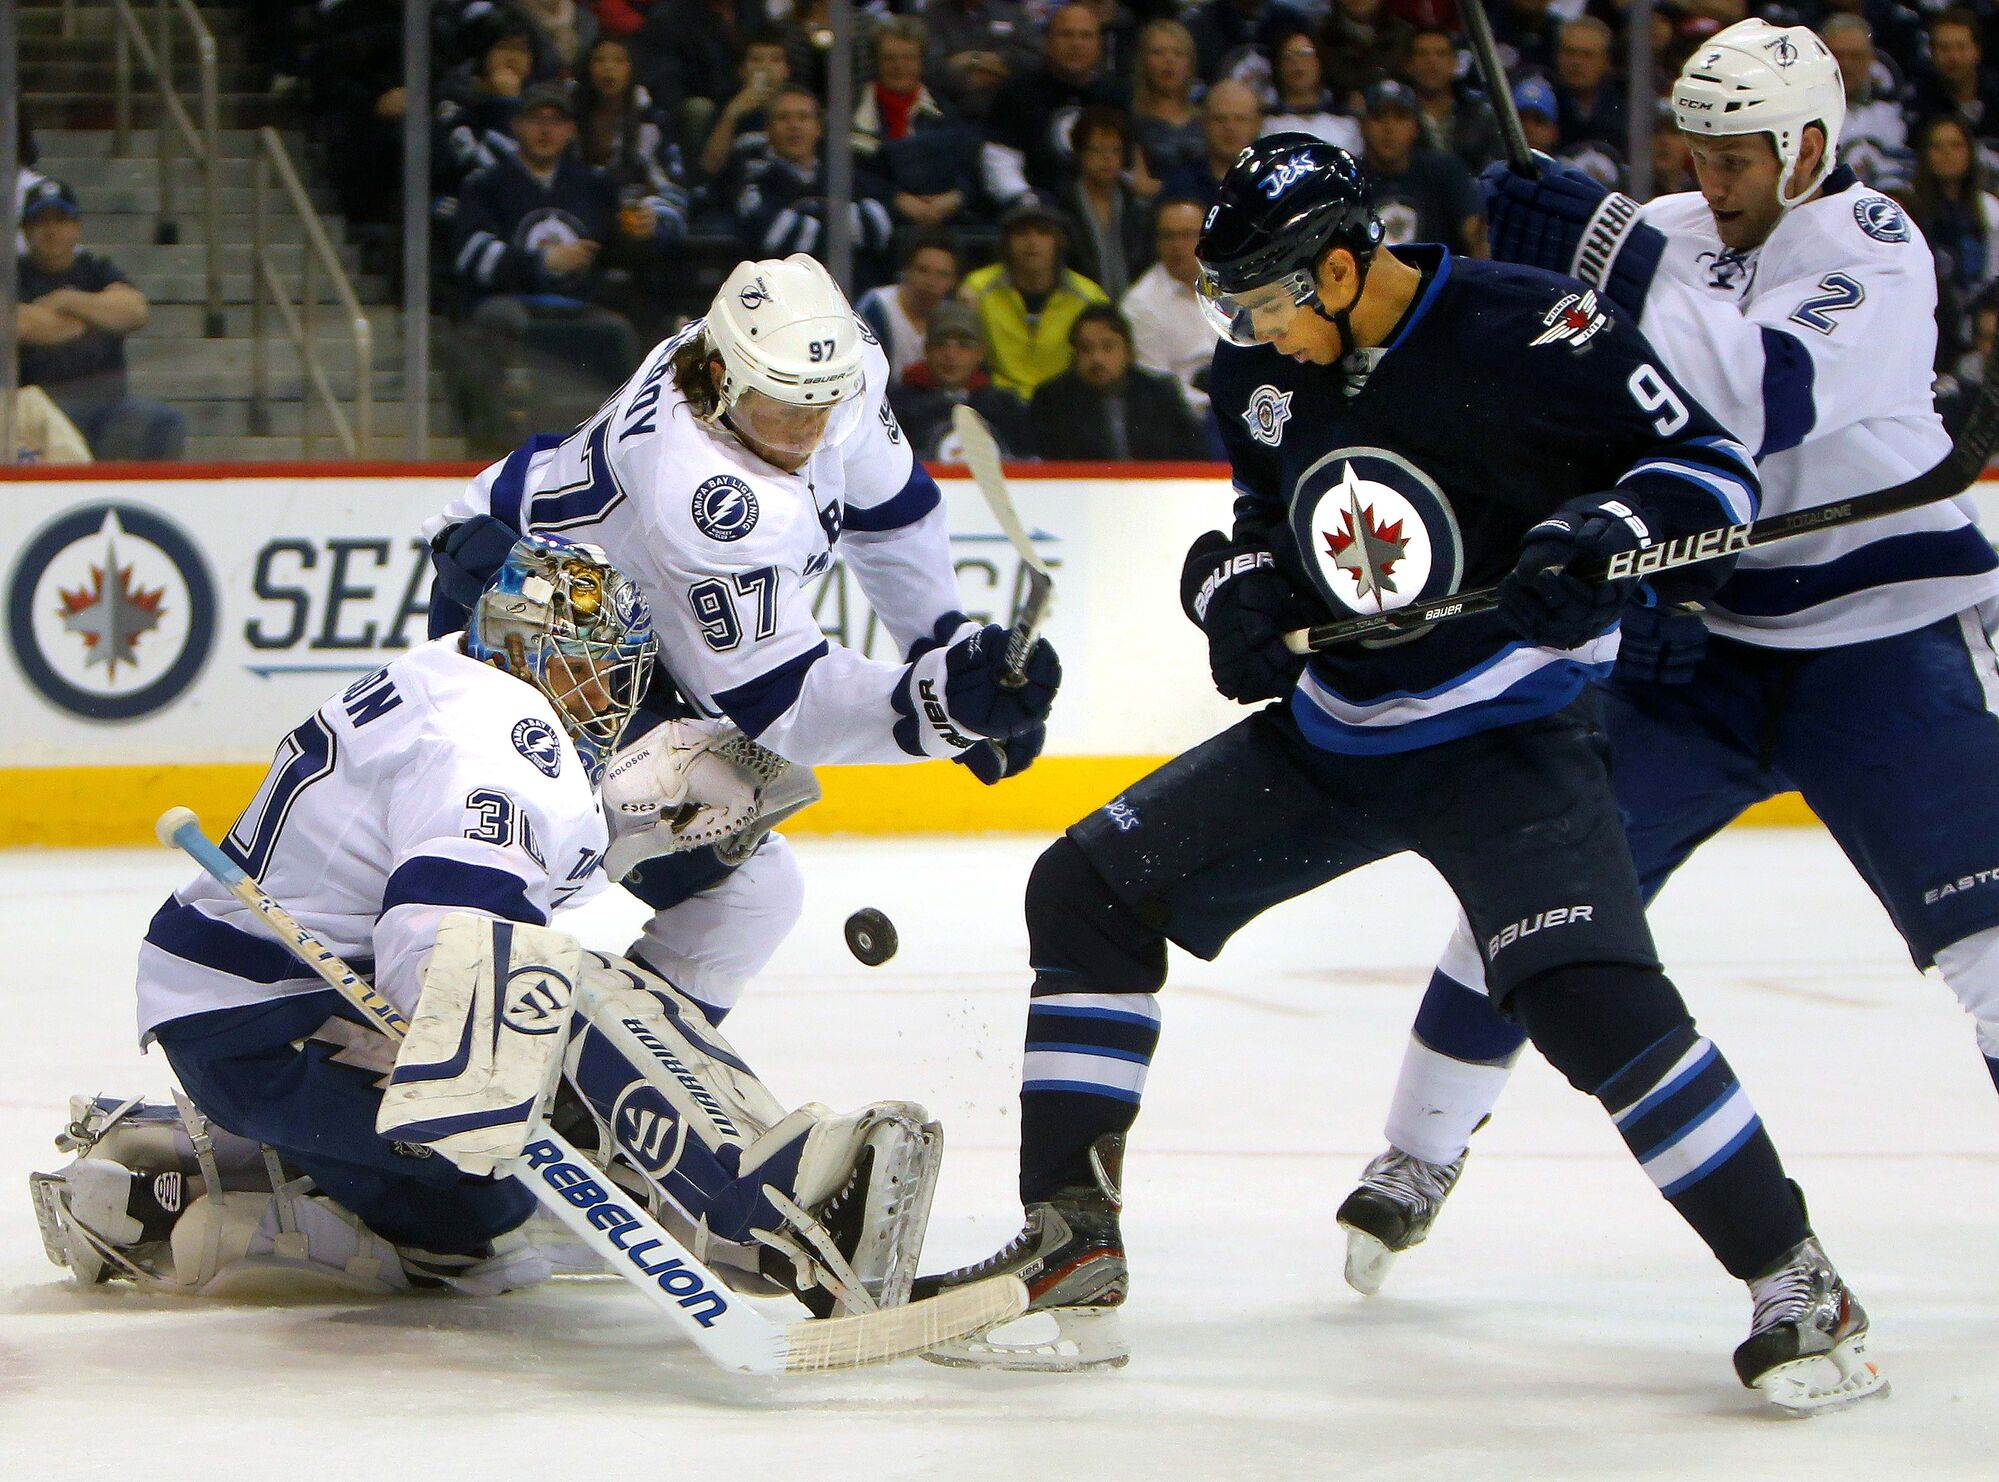 Tampa Bay Lightning goalie Dwayne Robinson keeps and eye on a bouncing puck with teammate Matt Gilroy while Winnipeg Jet Evander Kane and Florida's Eric Brewer fight for position Thursday.